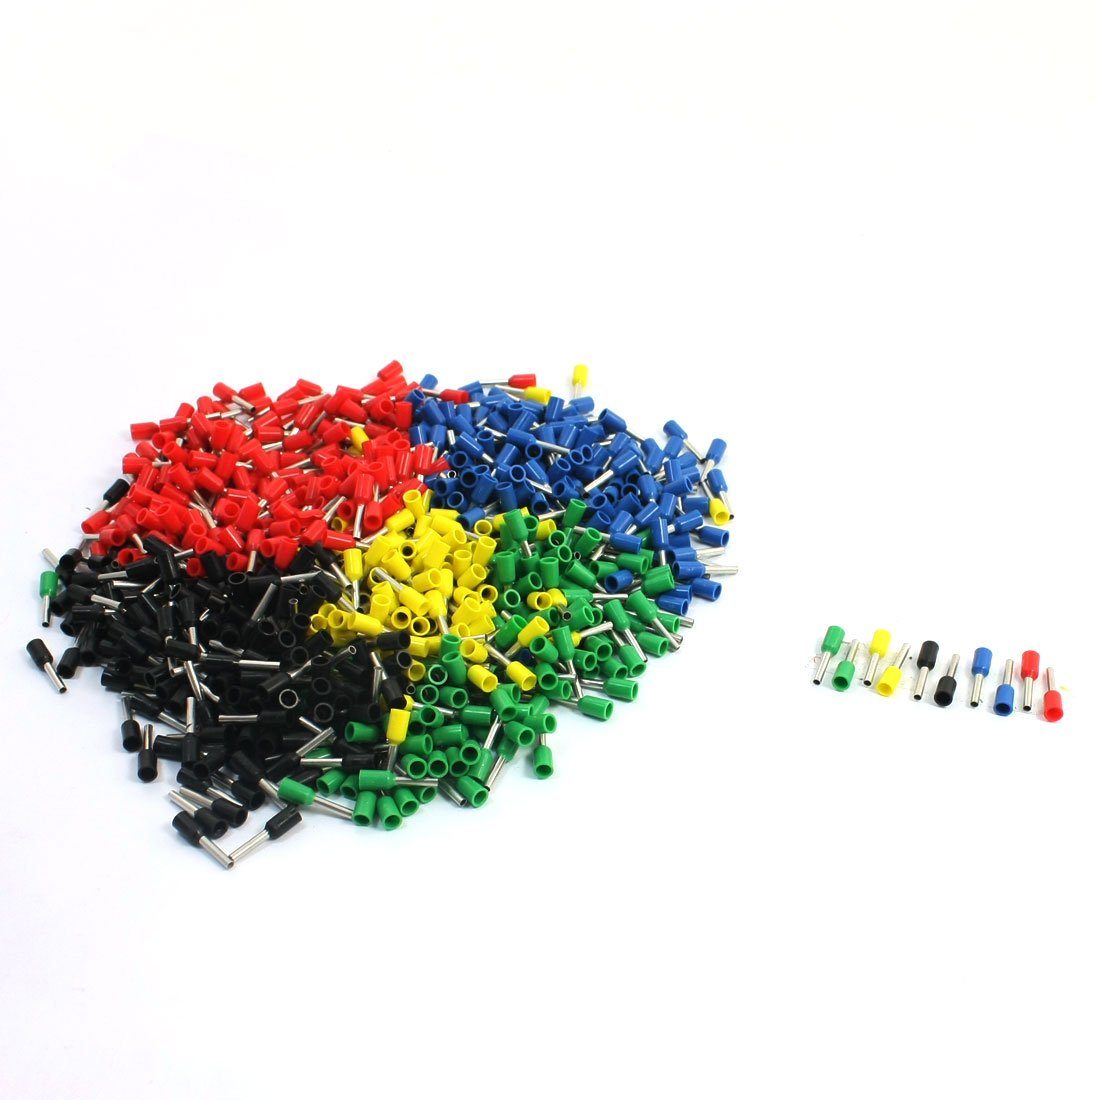 18 AWG Wire E1008 Mixed Color Pre-Insulated Ferrules Terminals 950Pcs